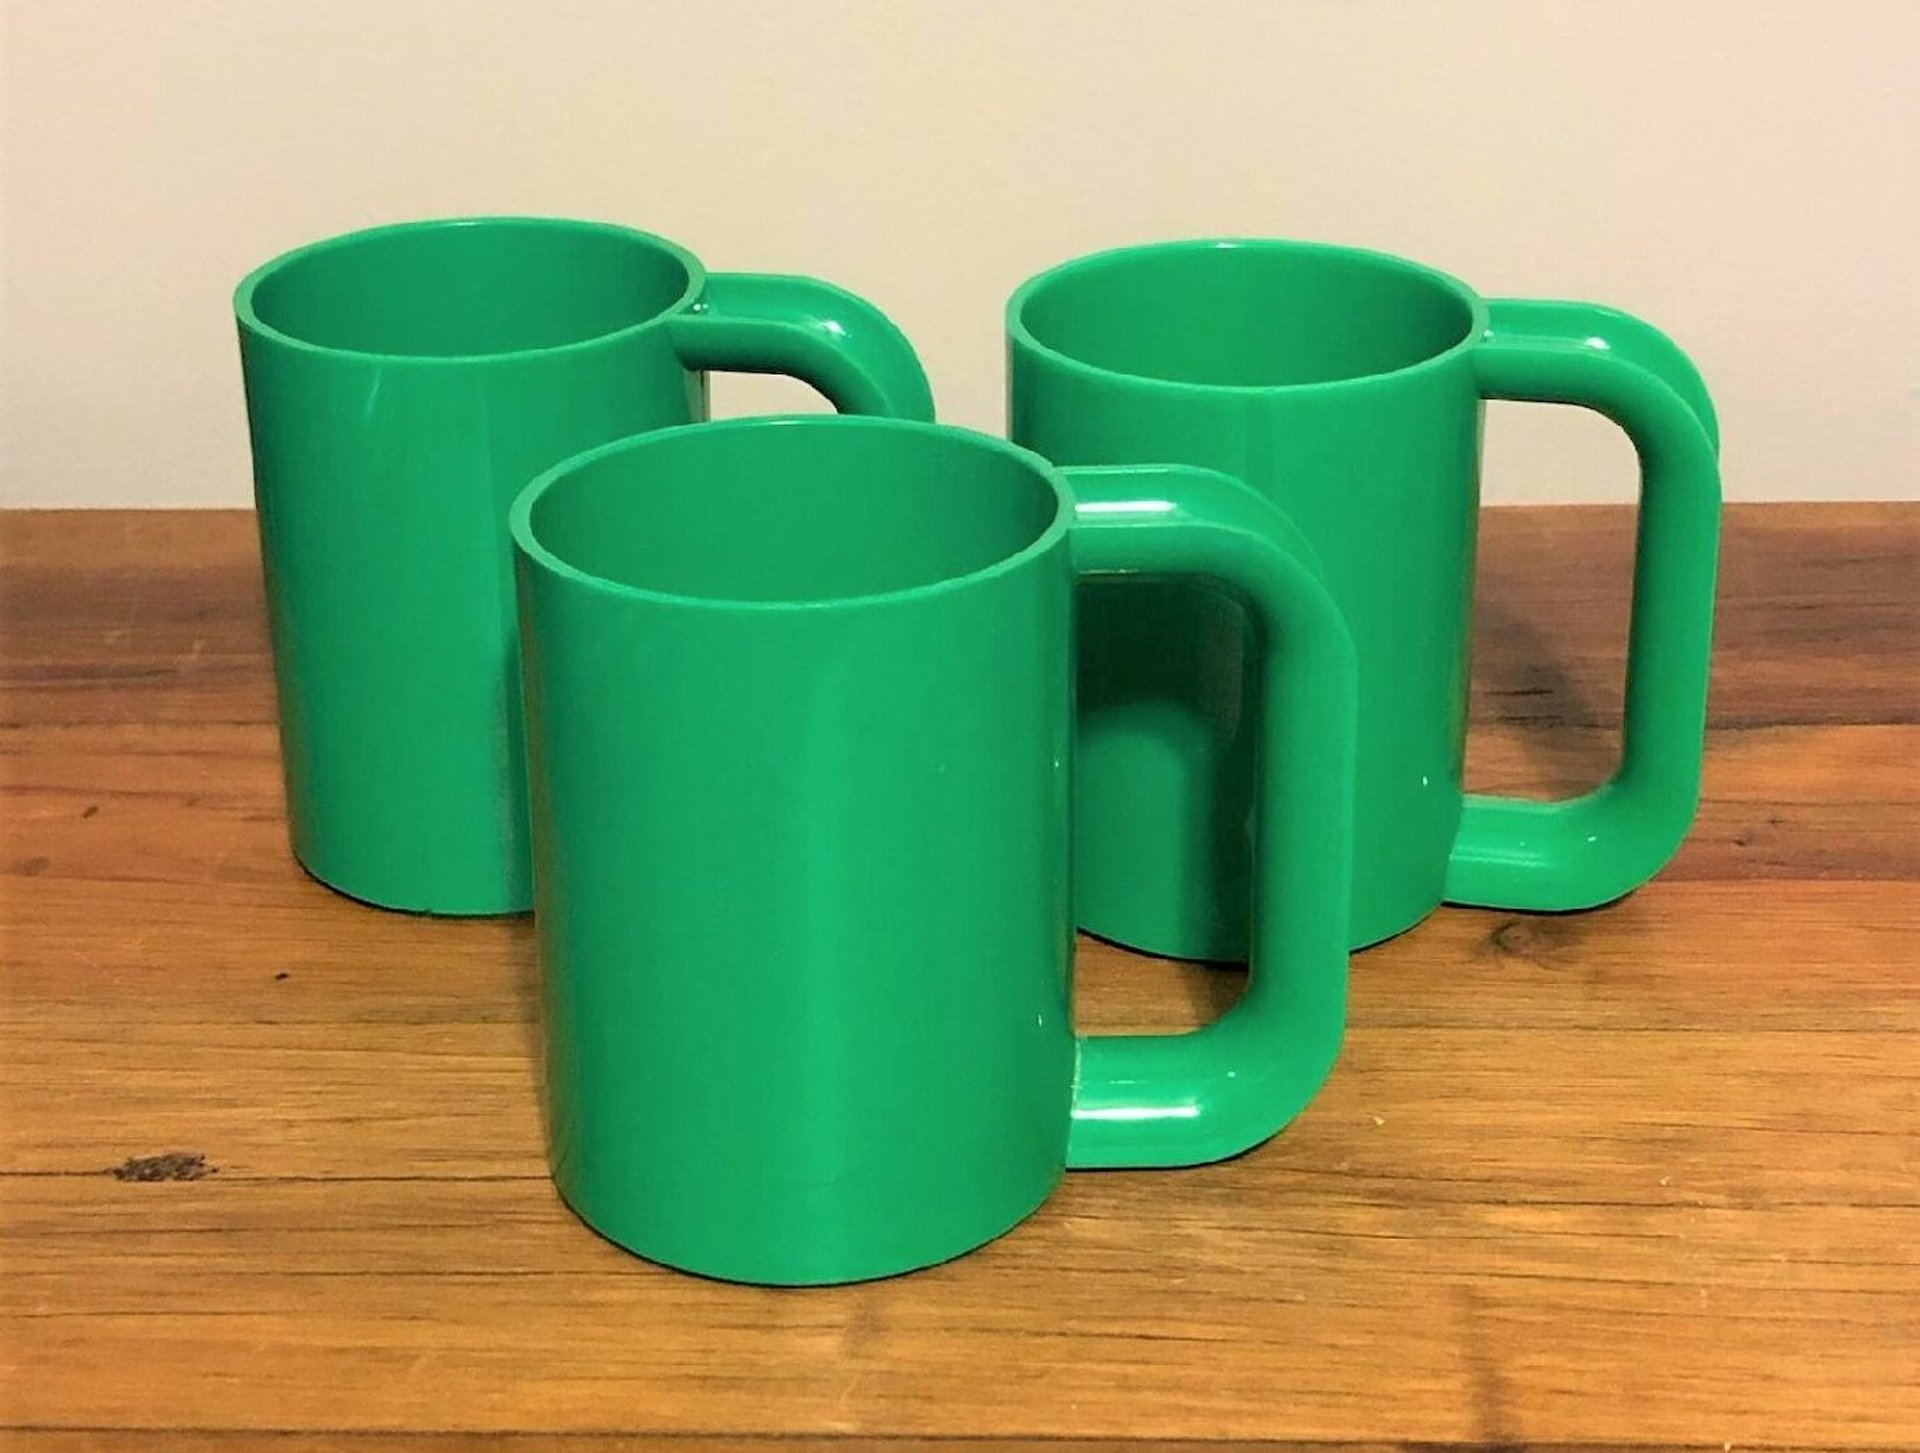 Vintage mugs designed by Massimo Vignelli and manufactured by Heller Inc.